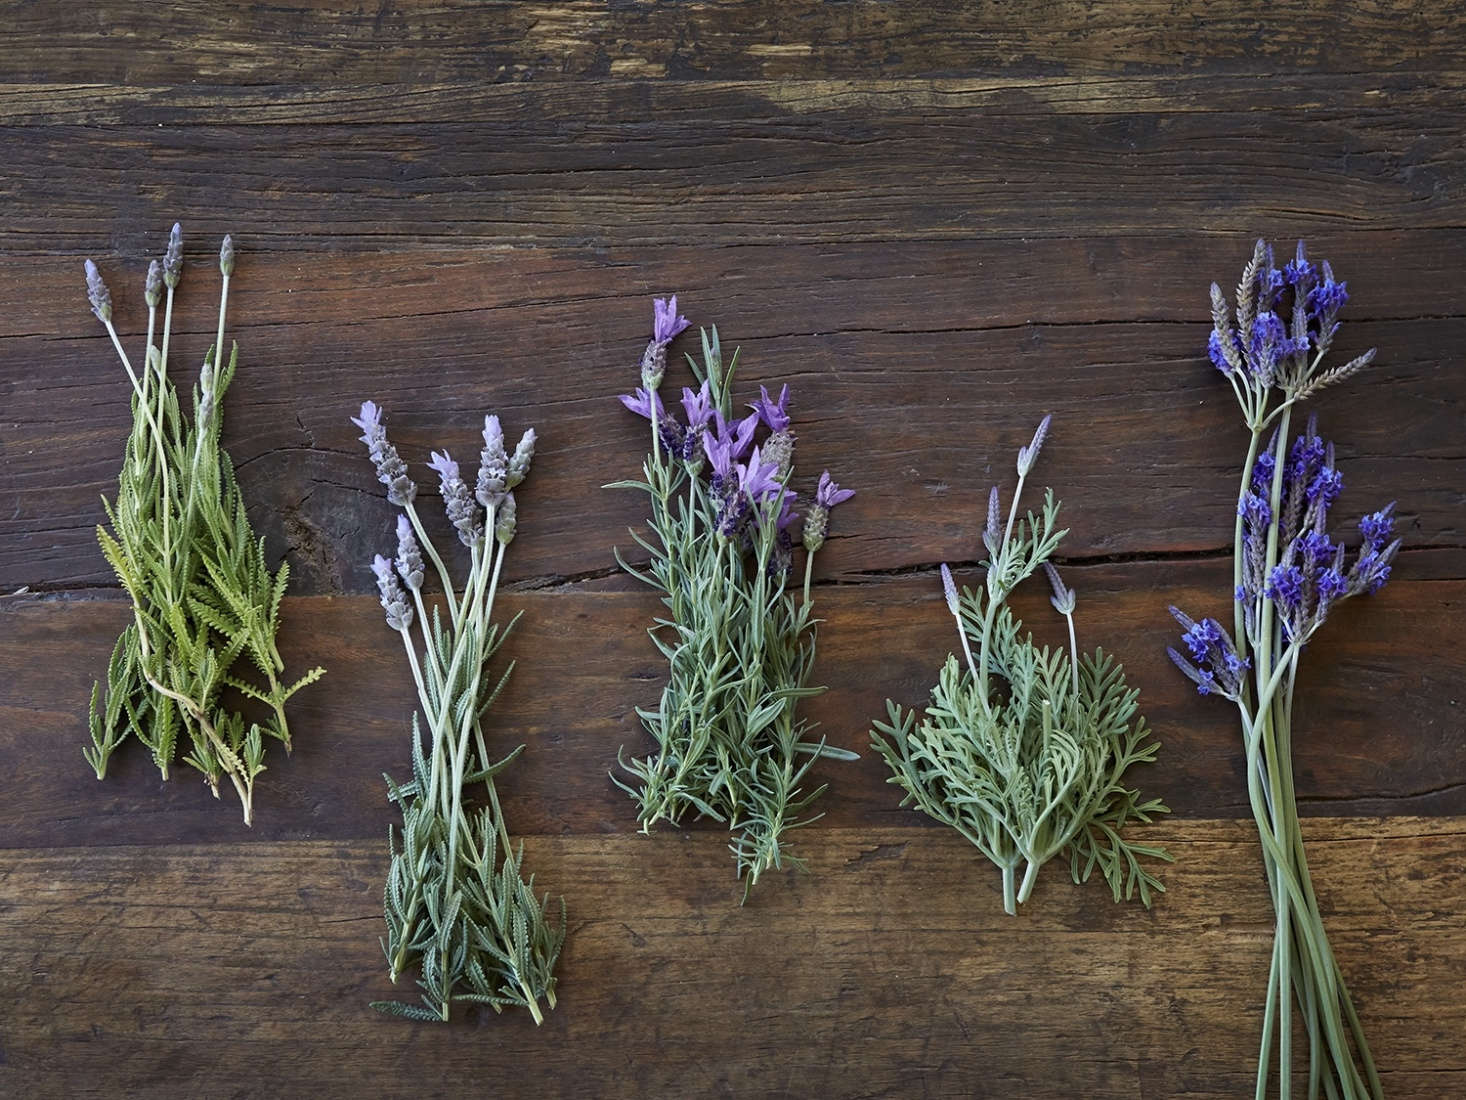 Here are a few of the types of lavender that I grow in my garden in Northern California, including (in the middle) Spanish lavender (Lavandula stoecha) and, on the far right, jagged lavender (L. pinnata buchii) with long, smooth stems.